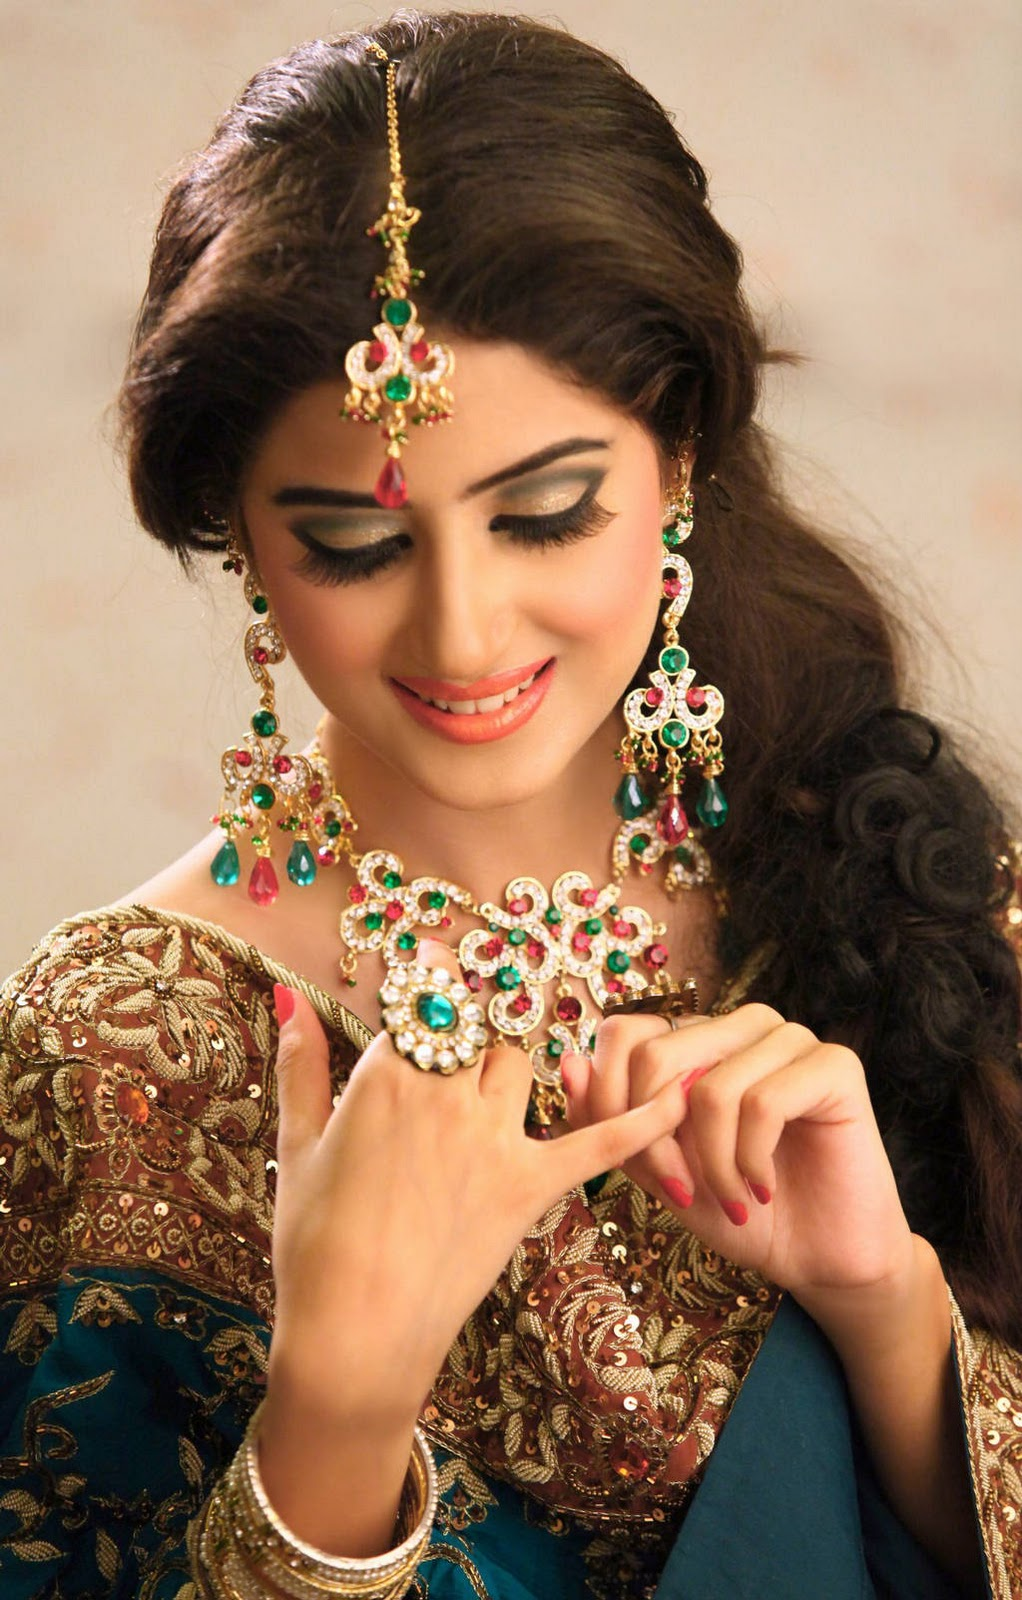 Stunning Pakistani Bridal Jewelry Designs 1022 x 1600 · 290 kB · jpeg